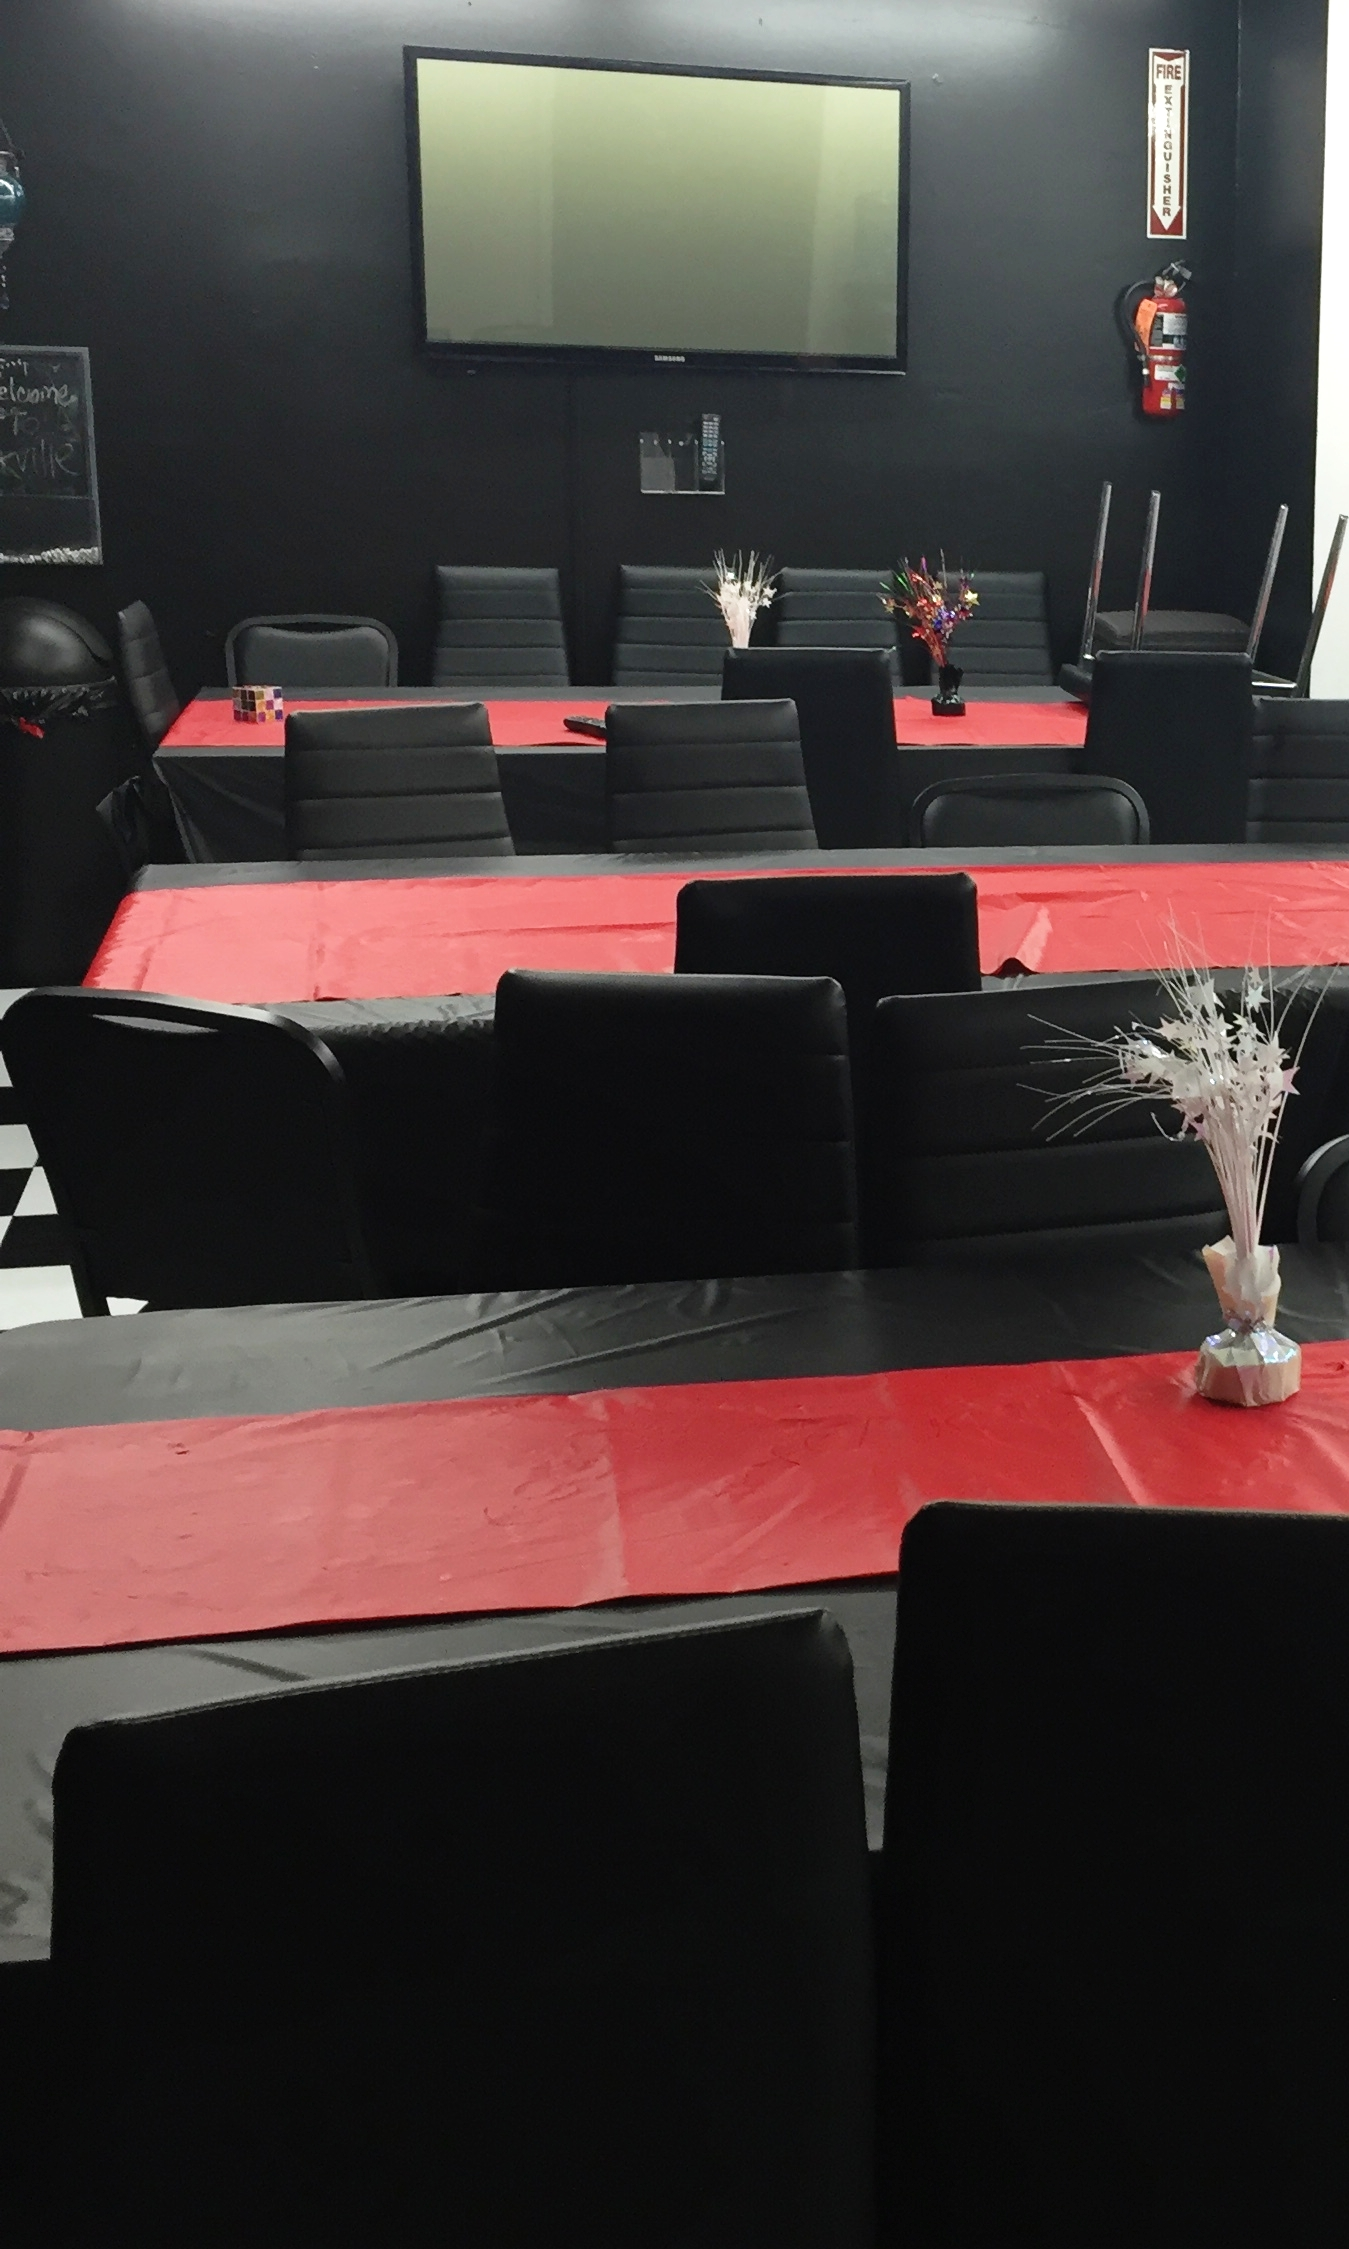 Party Room Rental - The Rockville Escape Room offers a multi-functional party room for refreshments and pre/post-game meetups. With tables and seatings, the capacity is 36 people. The cost for the room is $75* an hour and it includes tableware and cleaning.Ask about group discounts for large events!*Full deposit required for reservations.